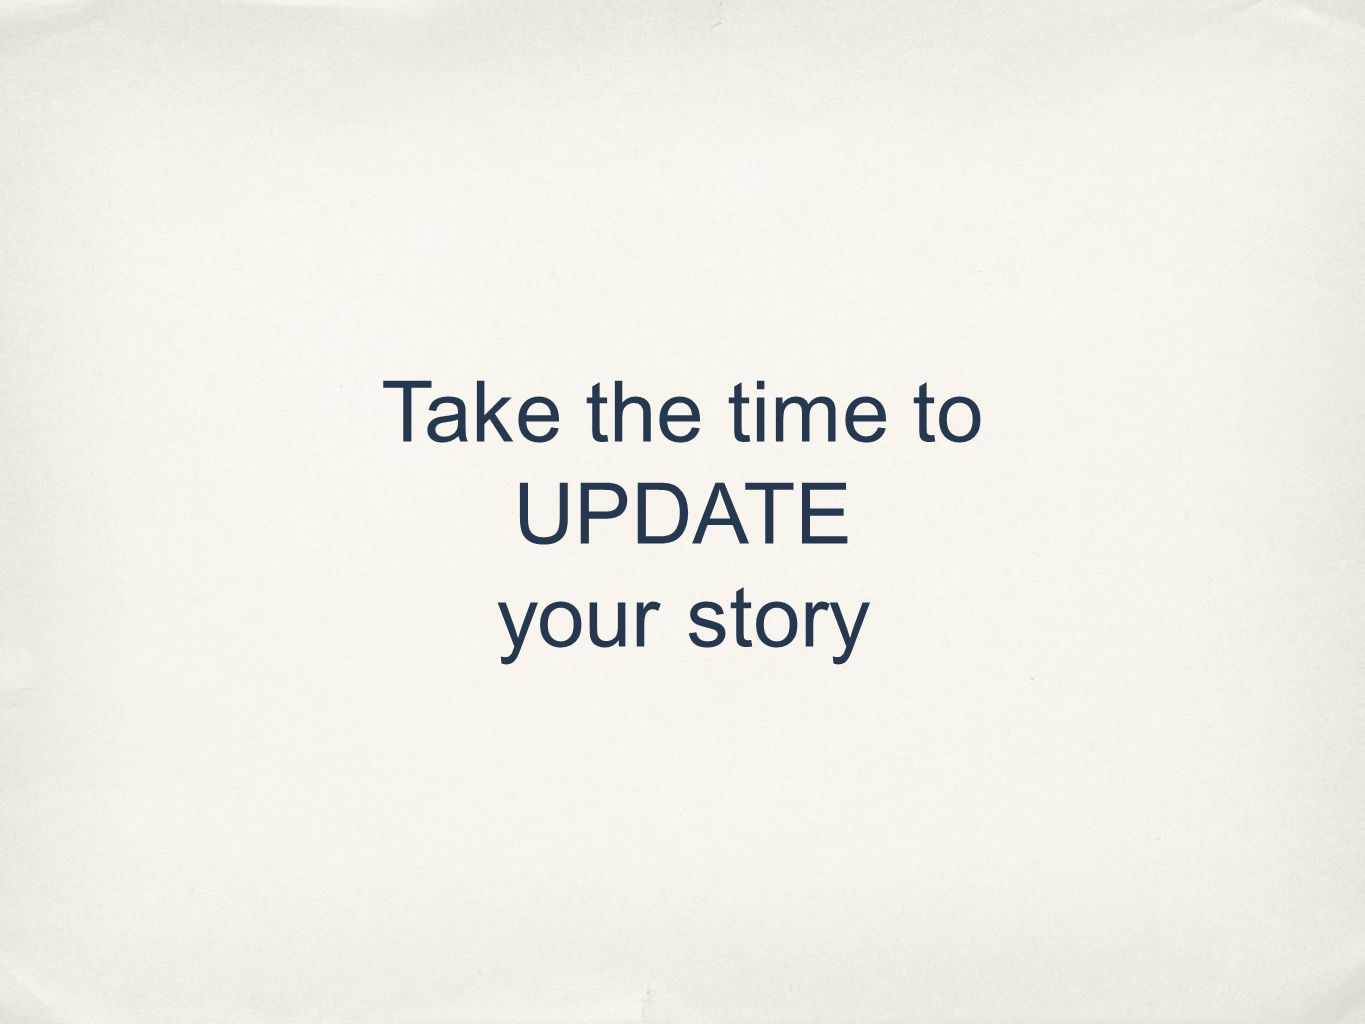 Take the time to UPDATE your story